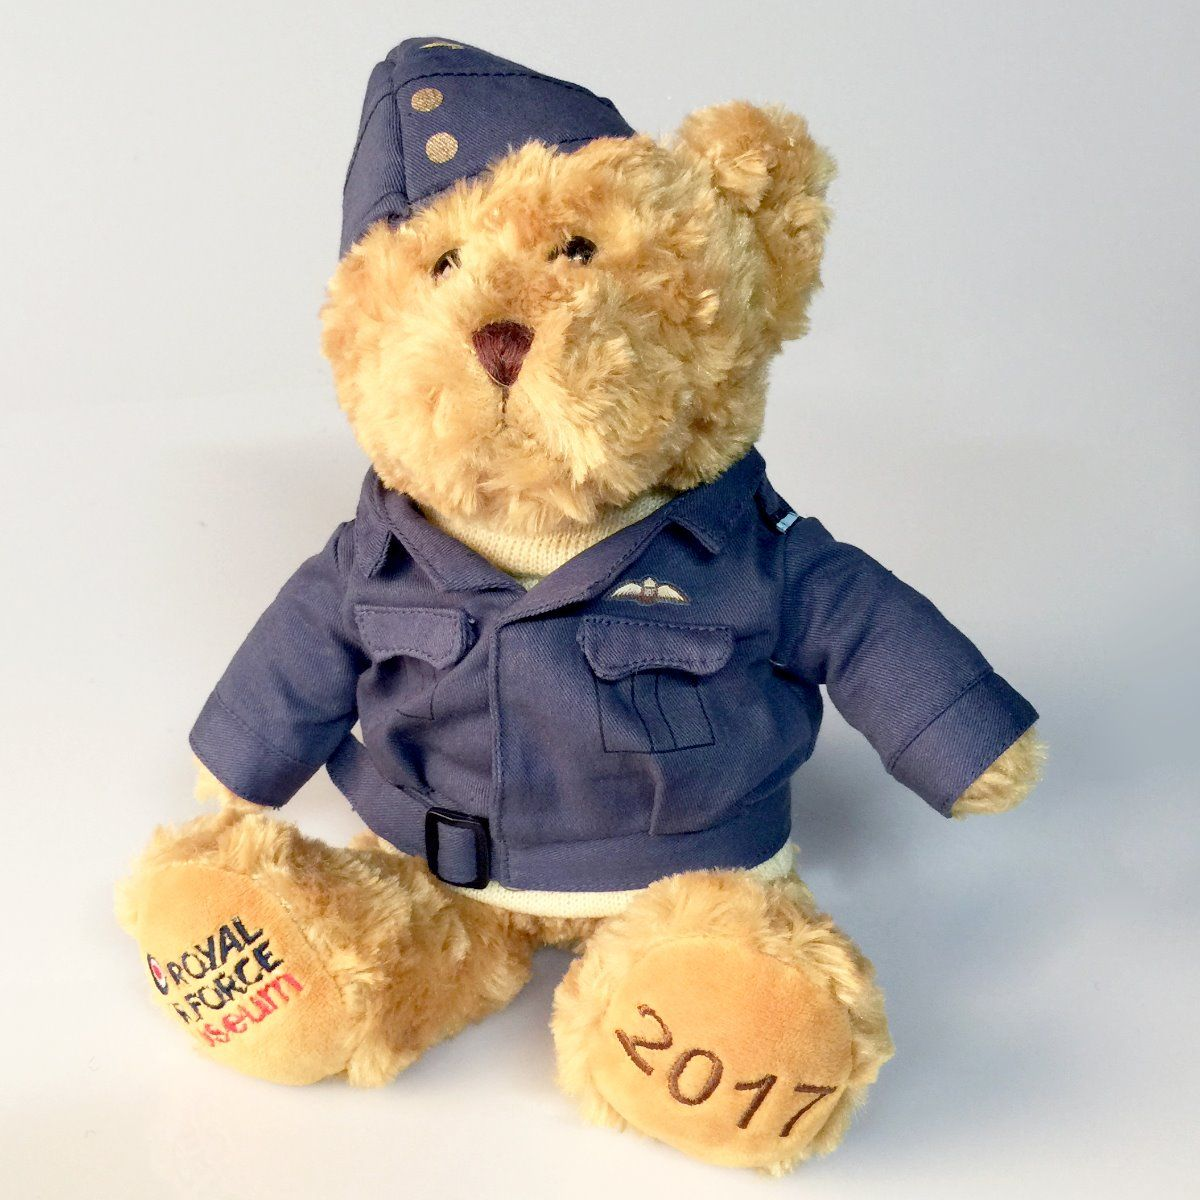 Our 2017 Bear is free this Sunday (27 November) with any purchase made at our London or Cosford shops.